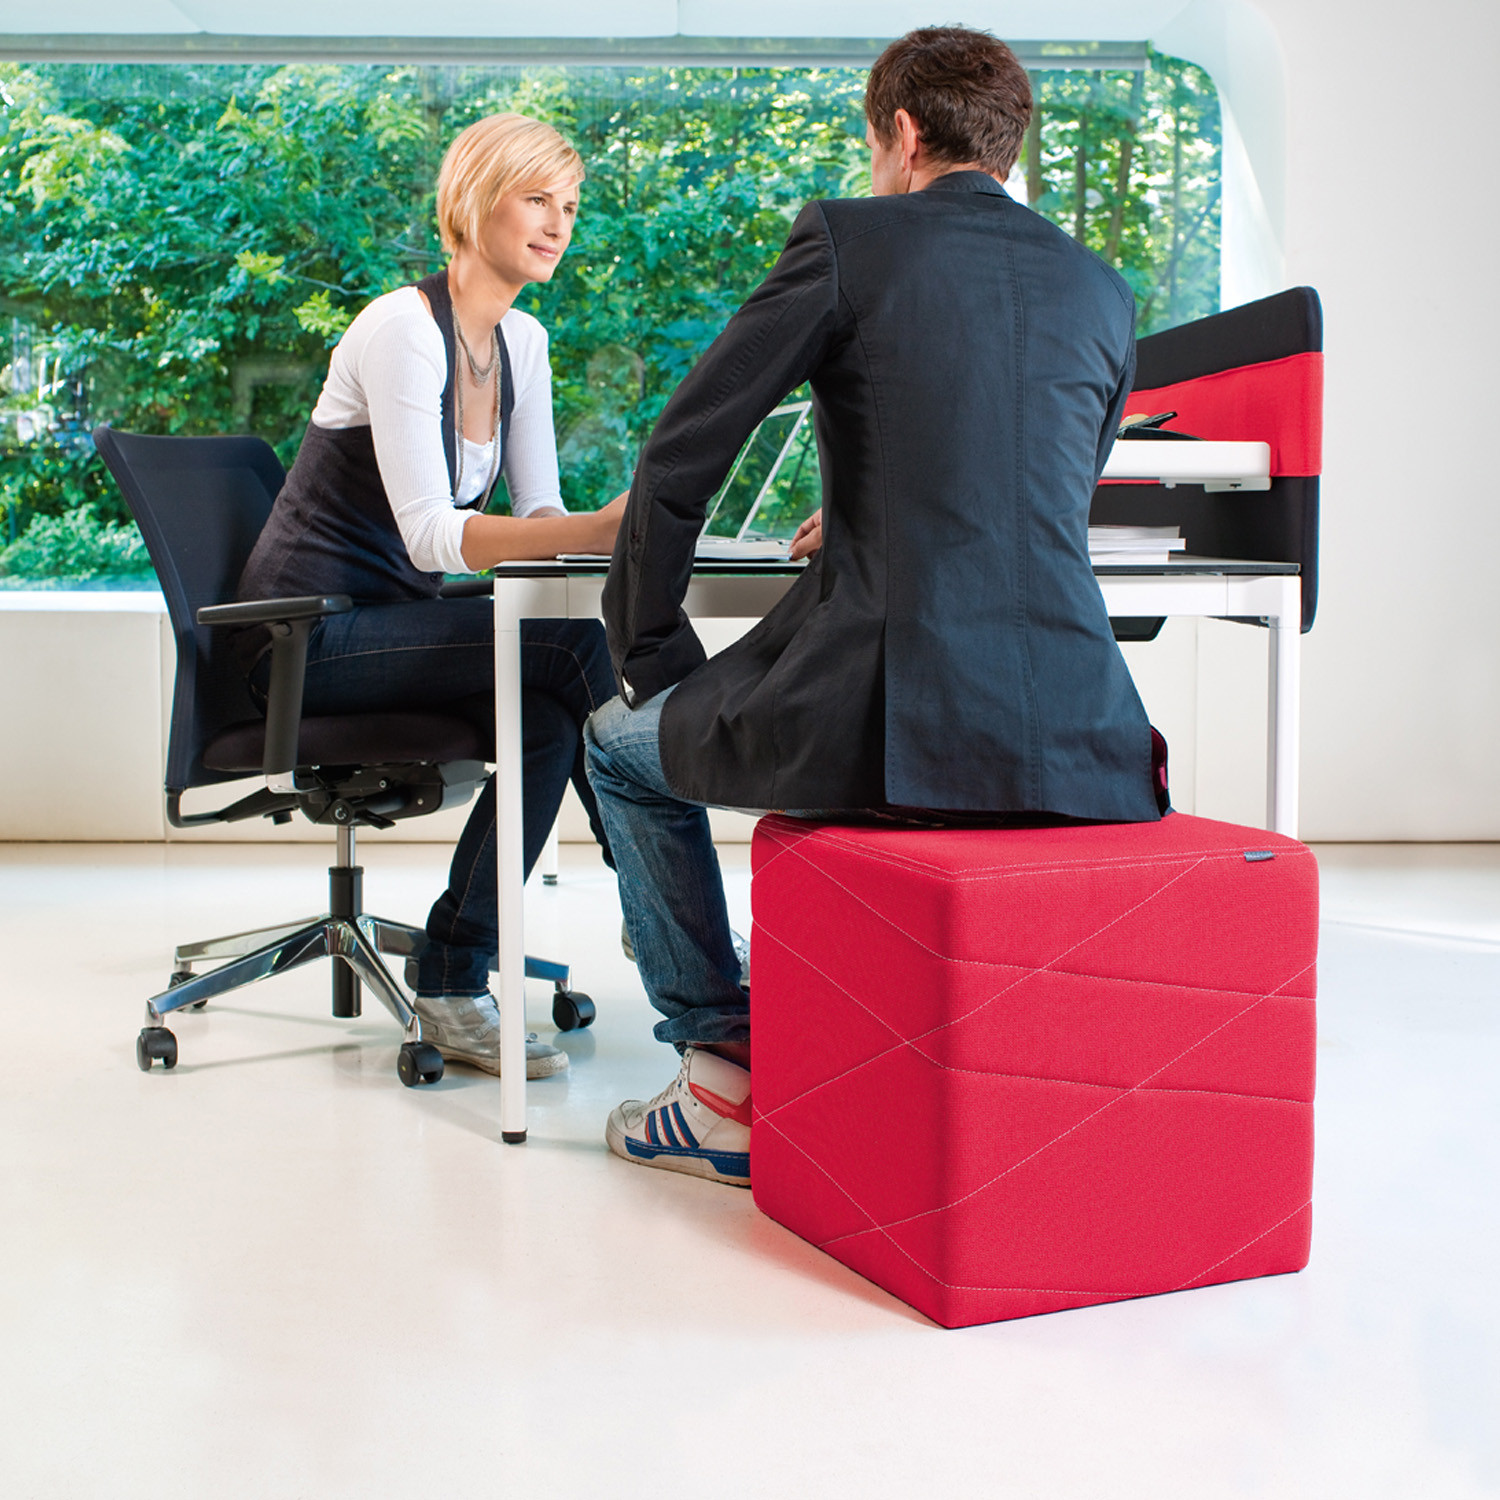 Pixie Cube Stools for Seating